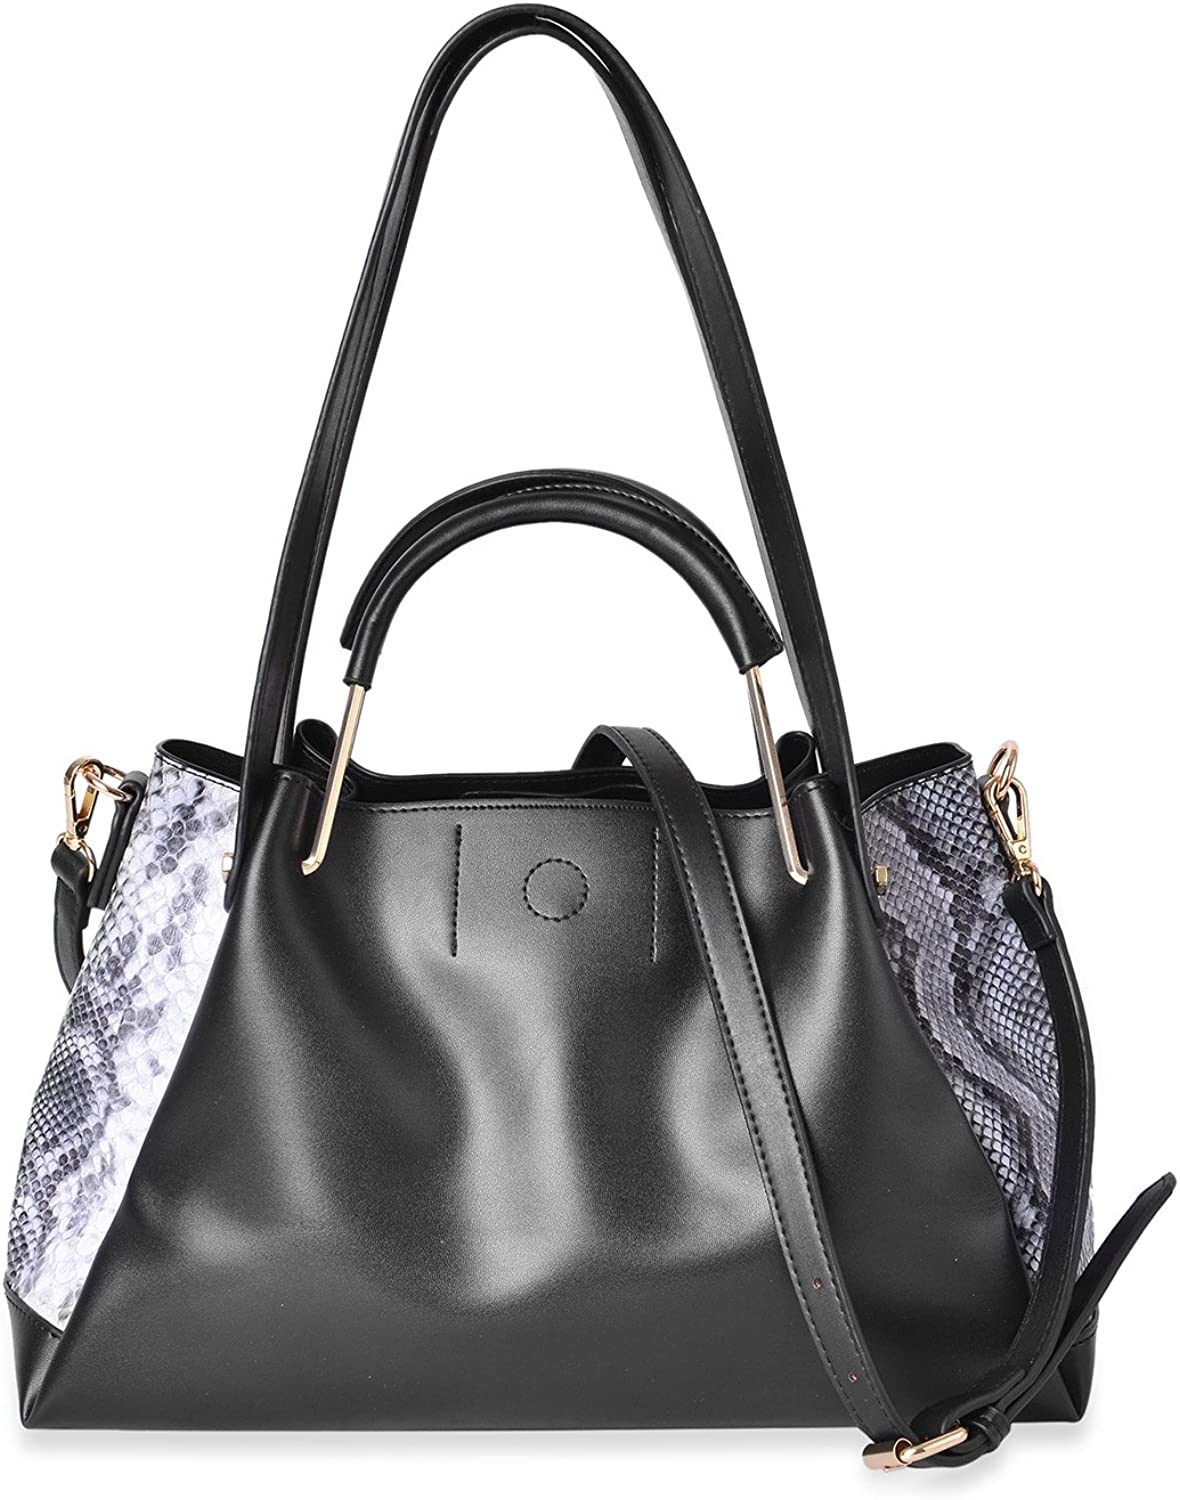 Black with Black & White Snake Skin Pattern Faux Leather Tote Bag 14.2x6x8.4